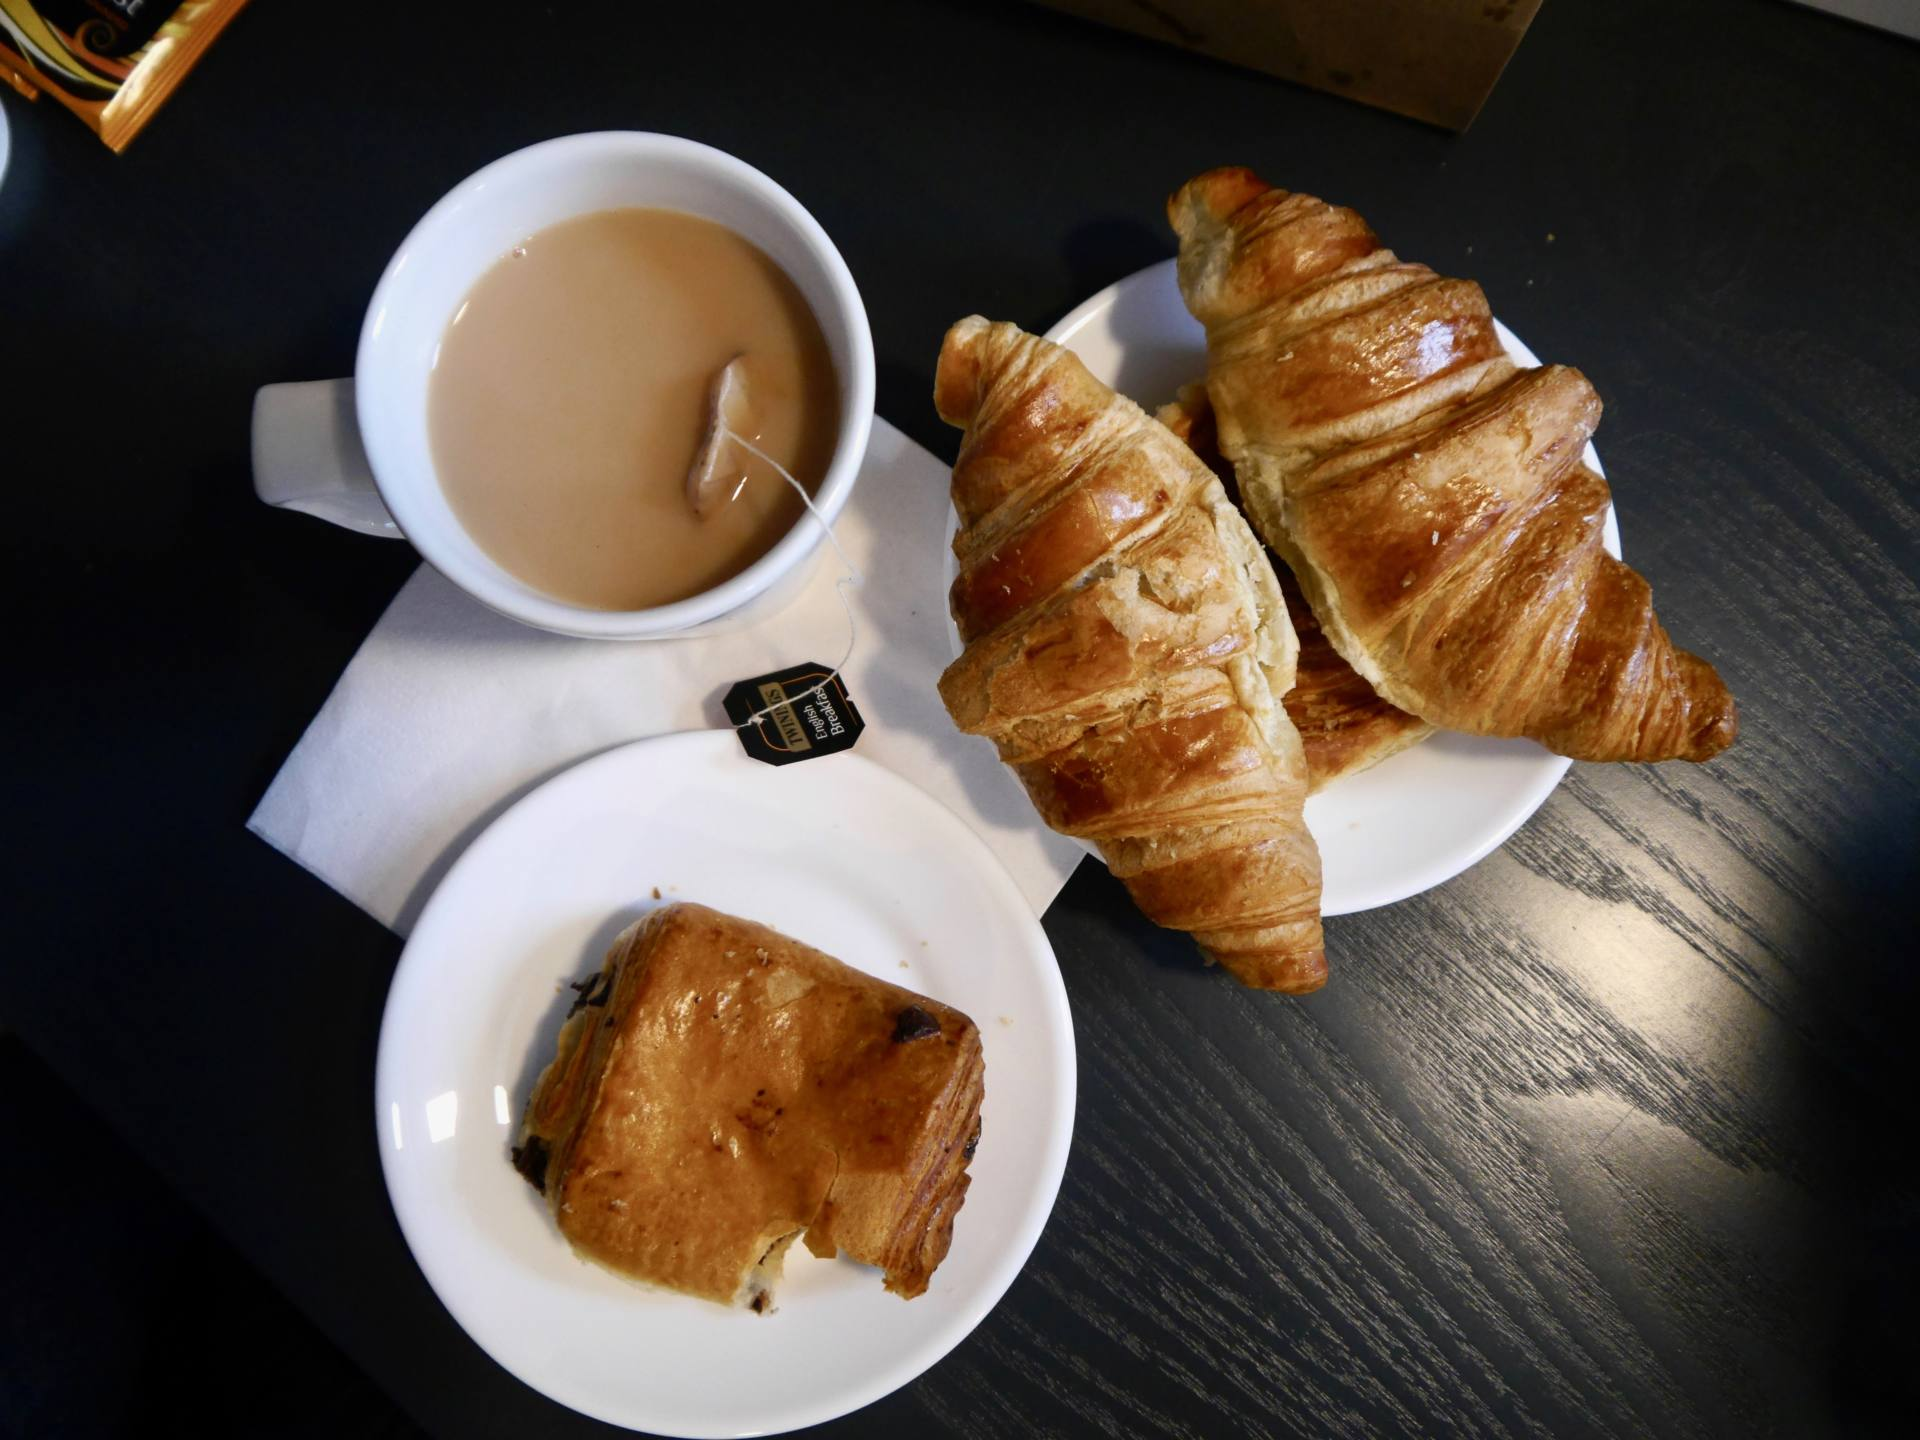 tea-pastries-croissants